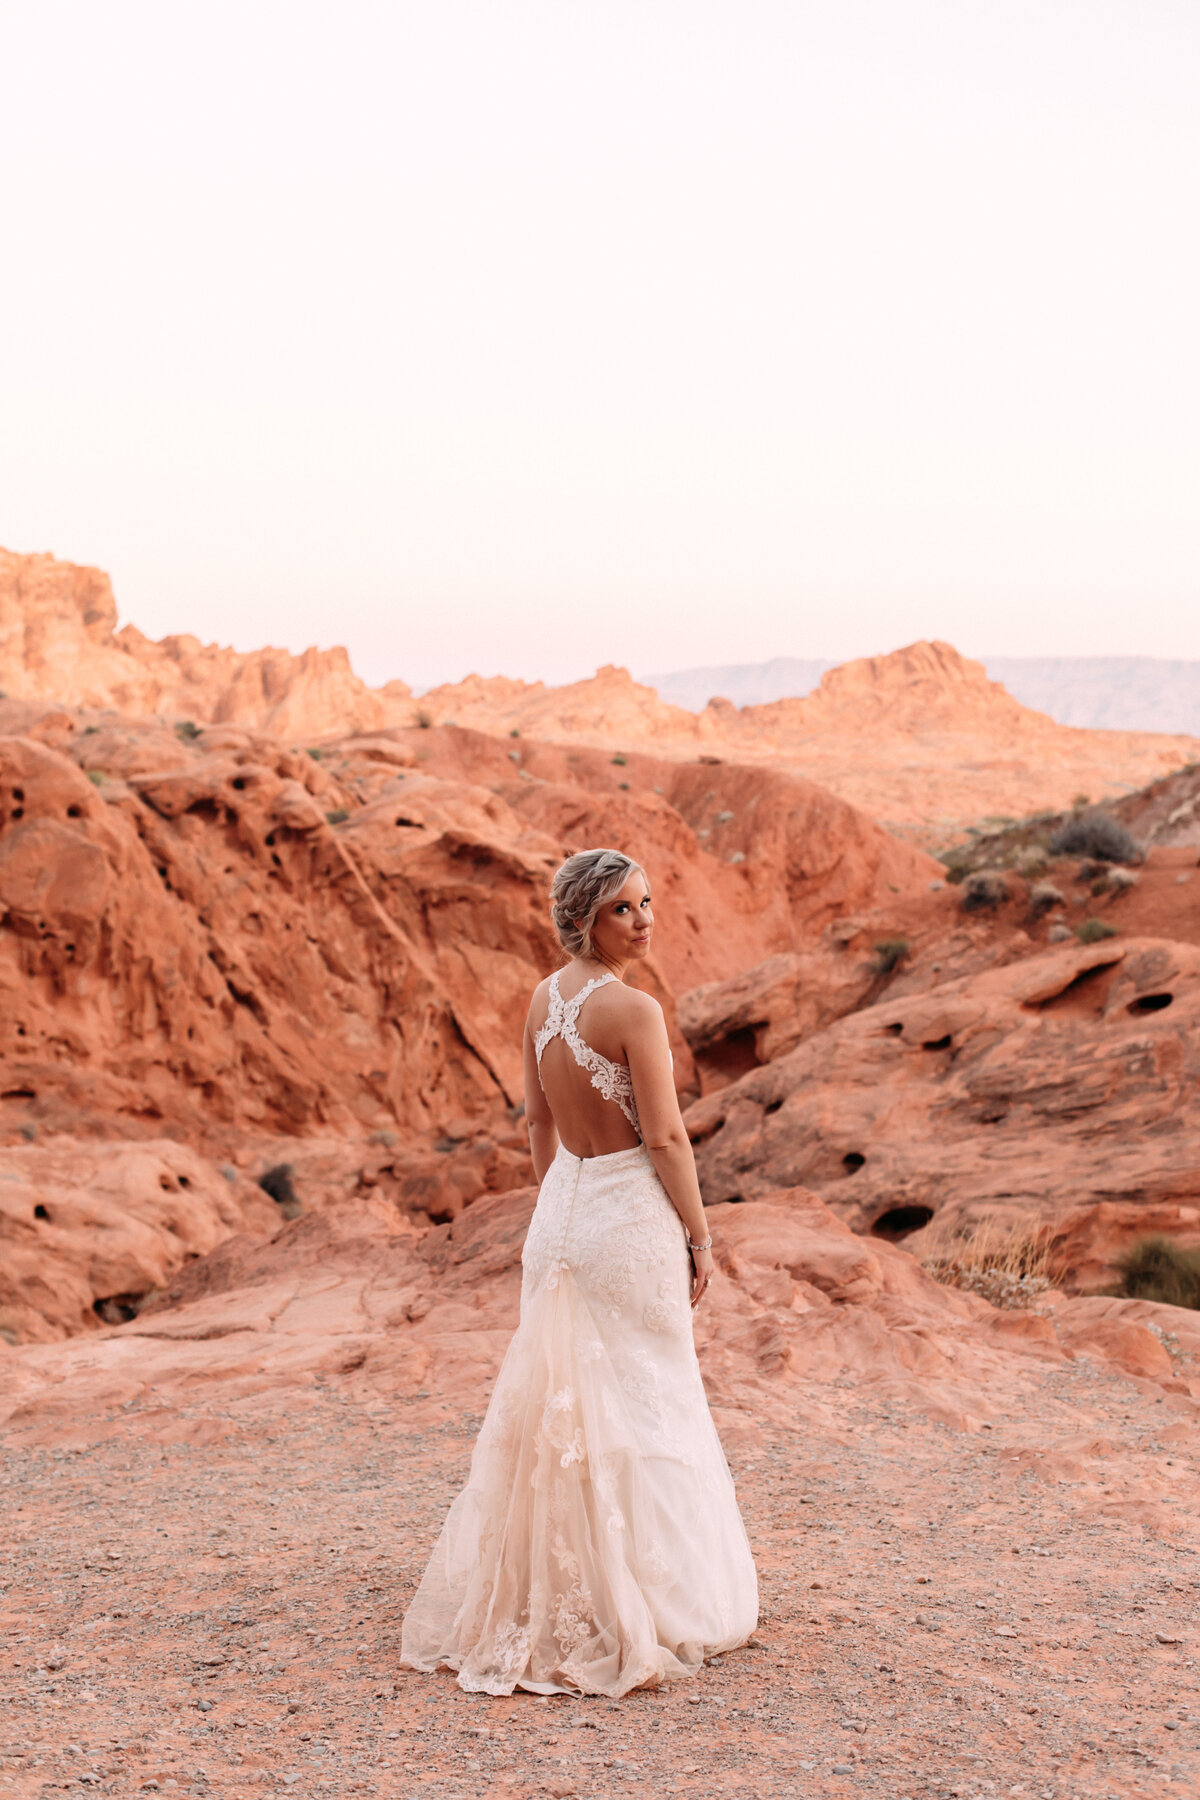 Heather+Ivan|AshlynSavannahPhoto|ValleyofFireElopement-149